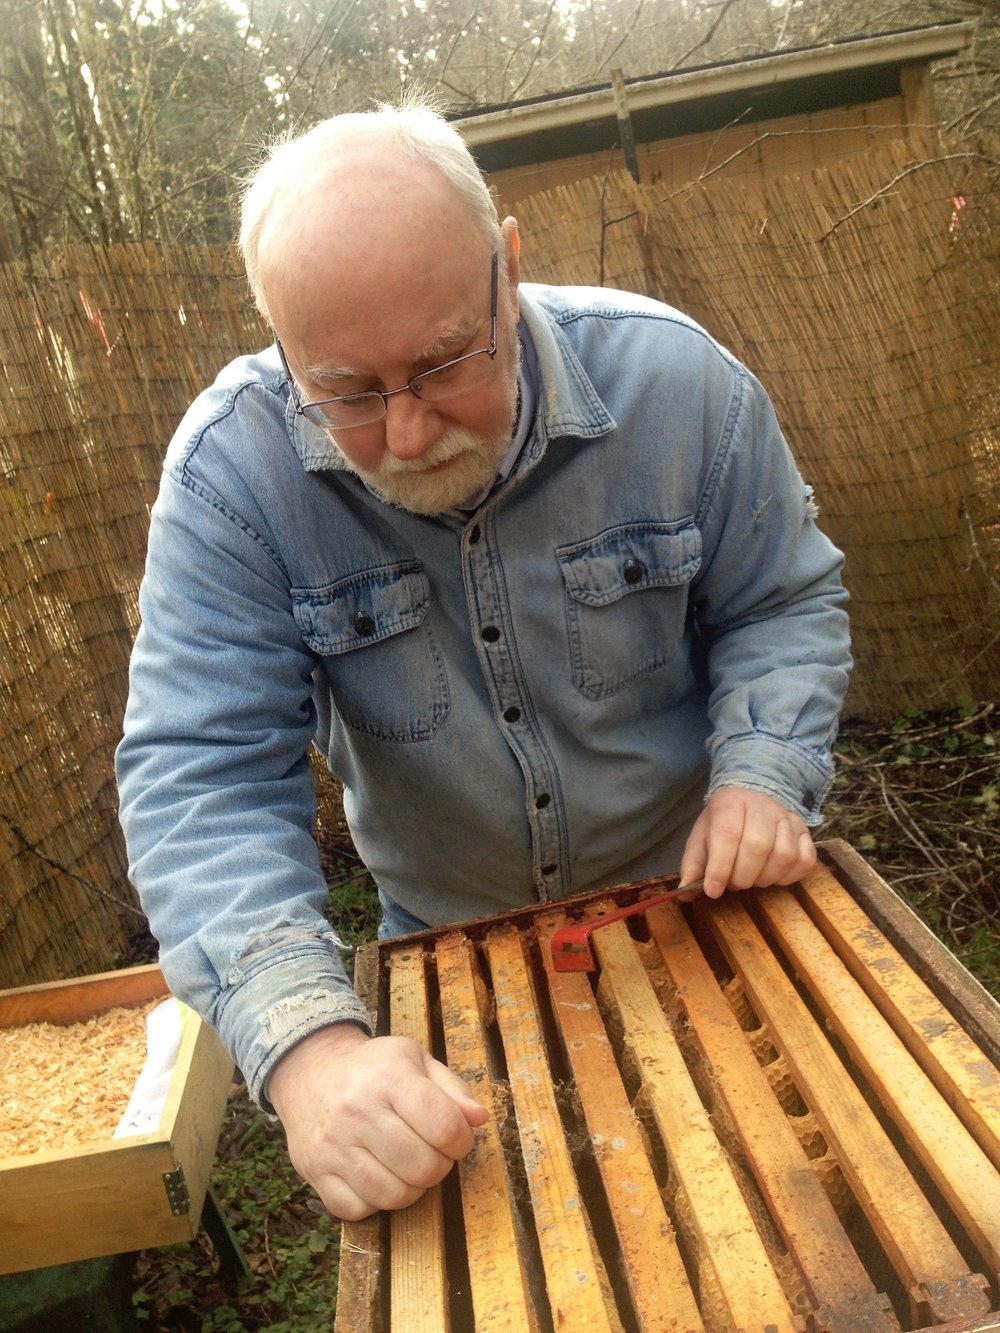 Author Kyle Pratt checks a hive